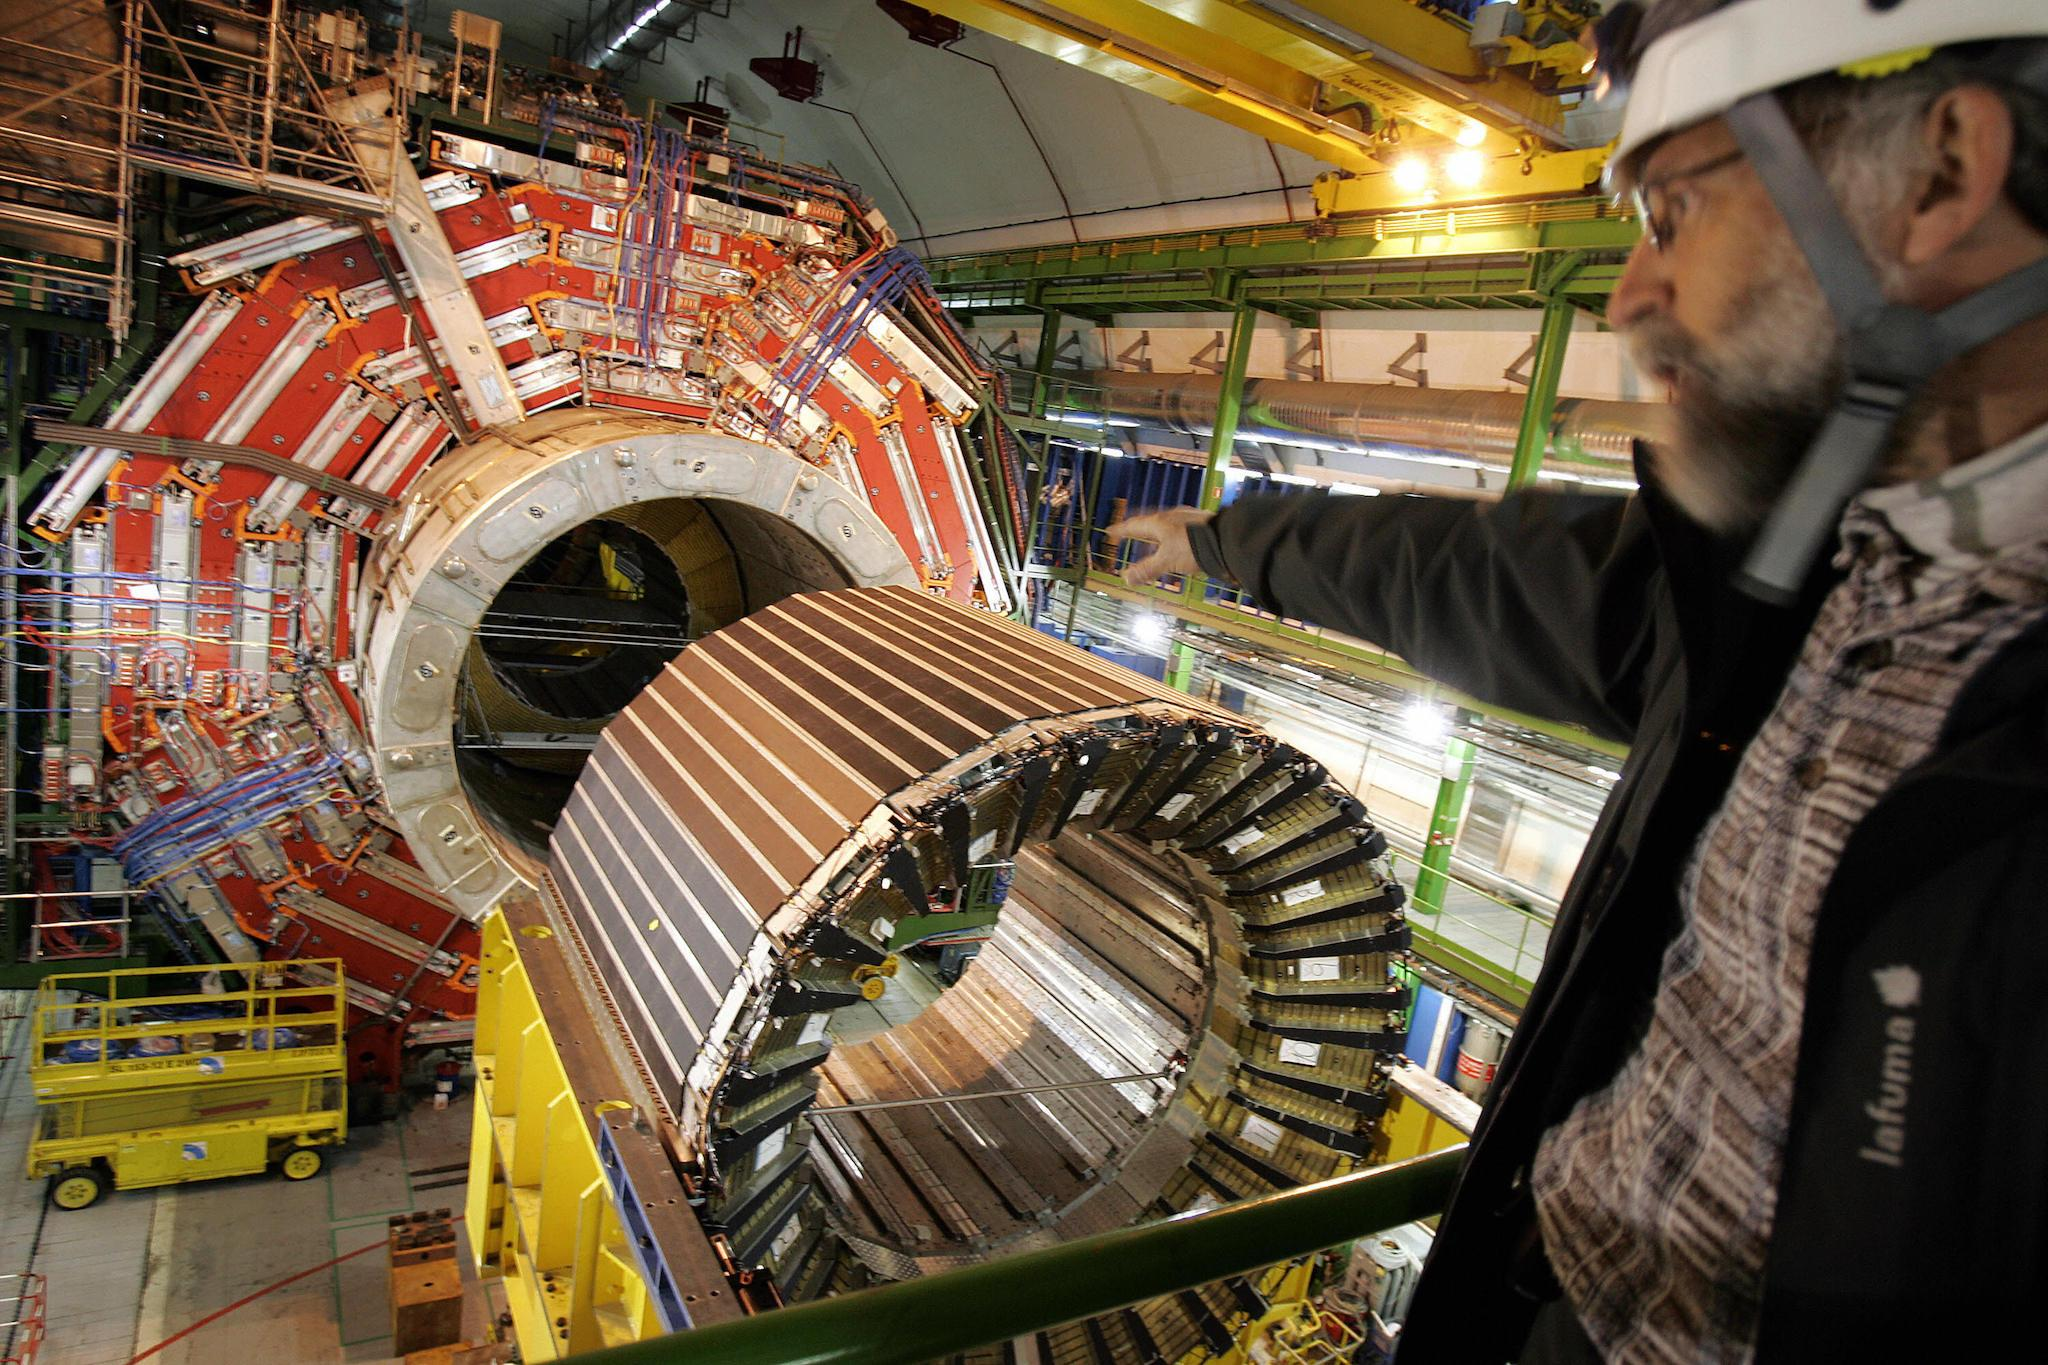 'Human sacrifice' staged at Cern, home of the God Particle